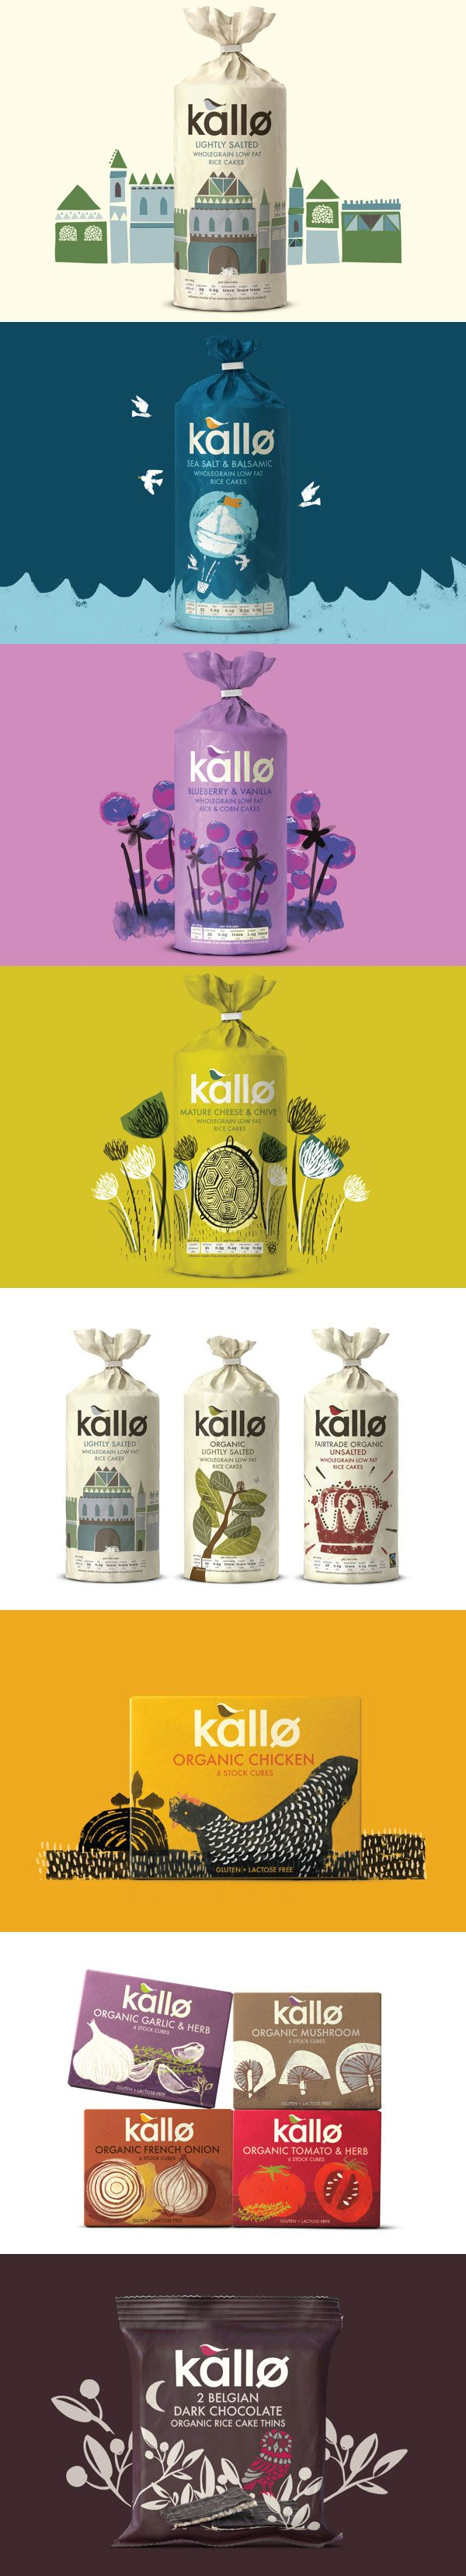 Kallo Branding, Graphic Design, Packaging By Big Fish PD clever #snacks #packaging PD